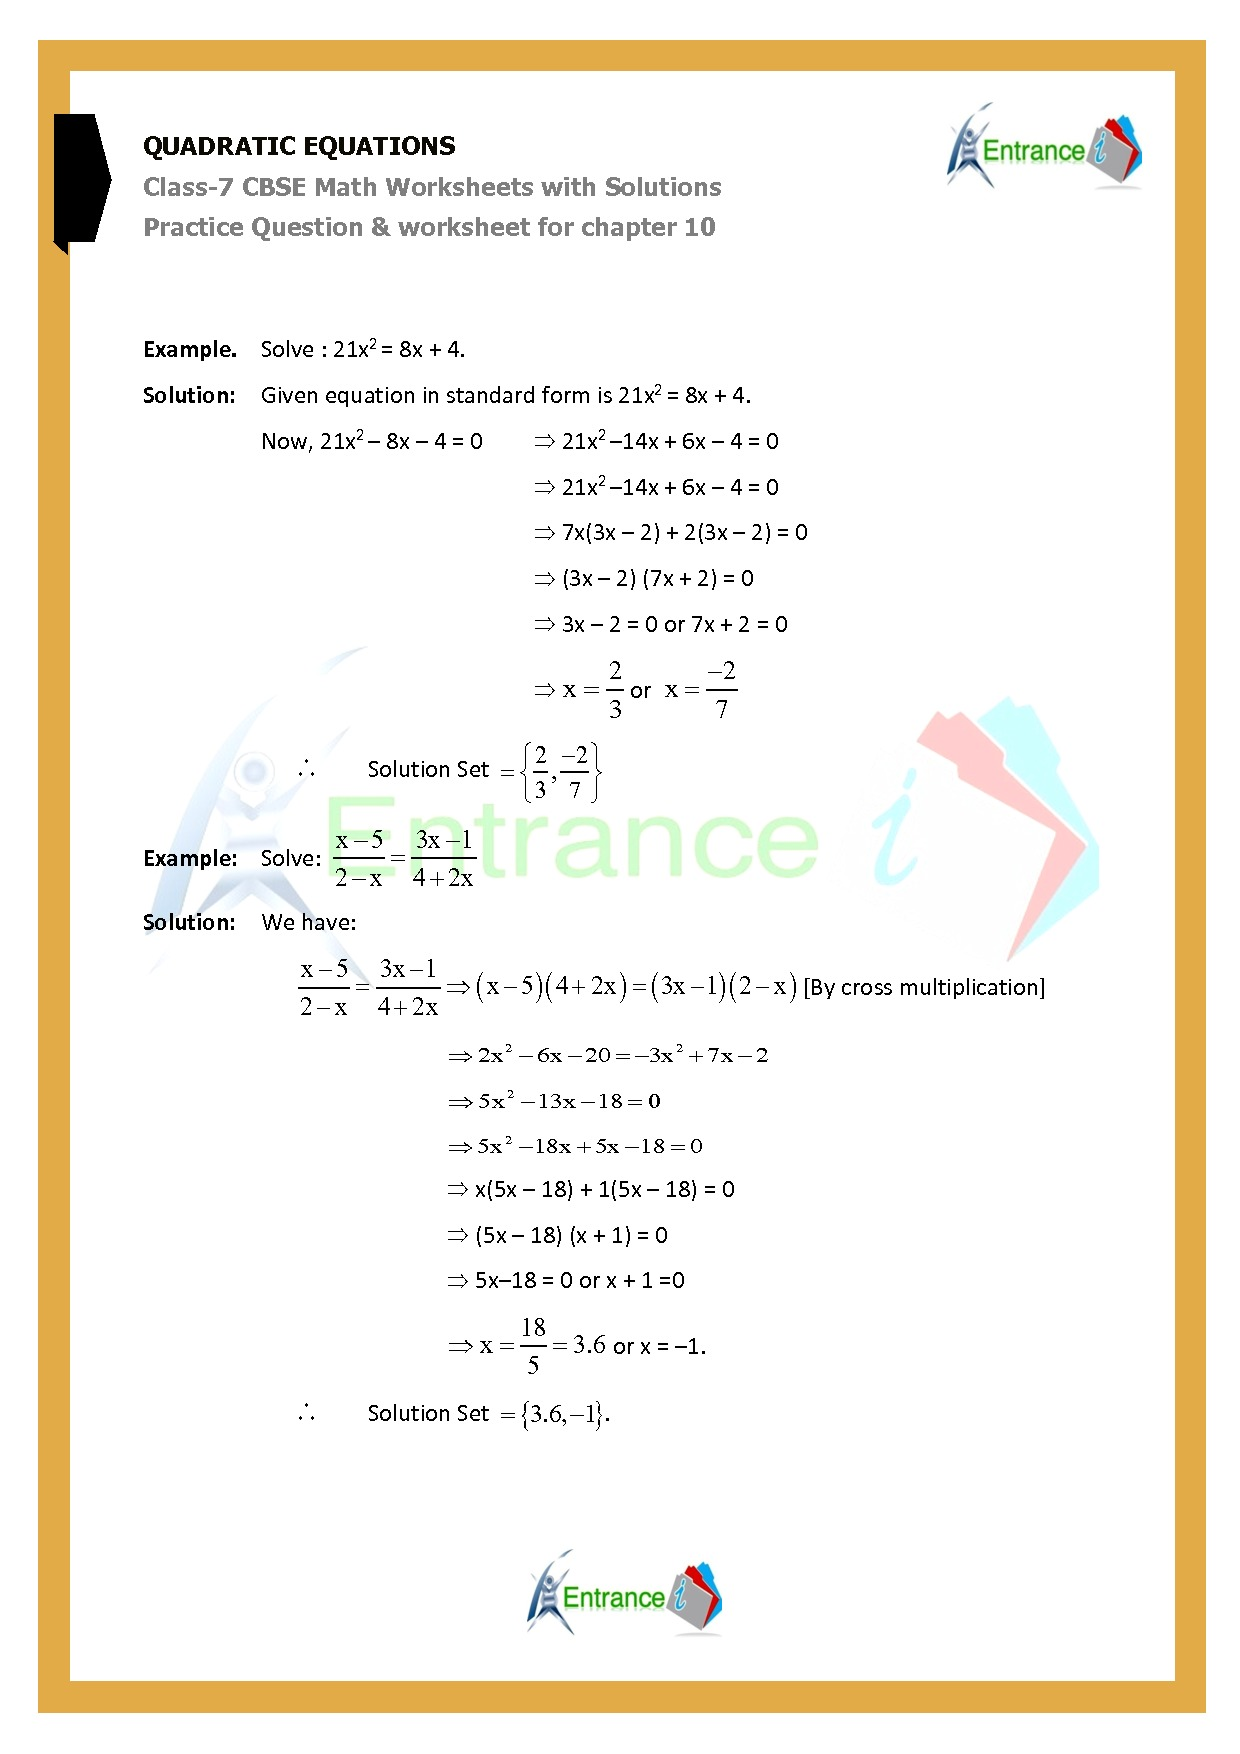 Worksheet For Class 7 Maths For Chapter 10 Quadratic Equations